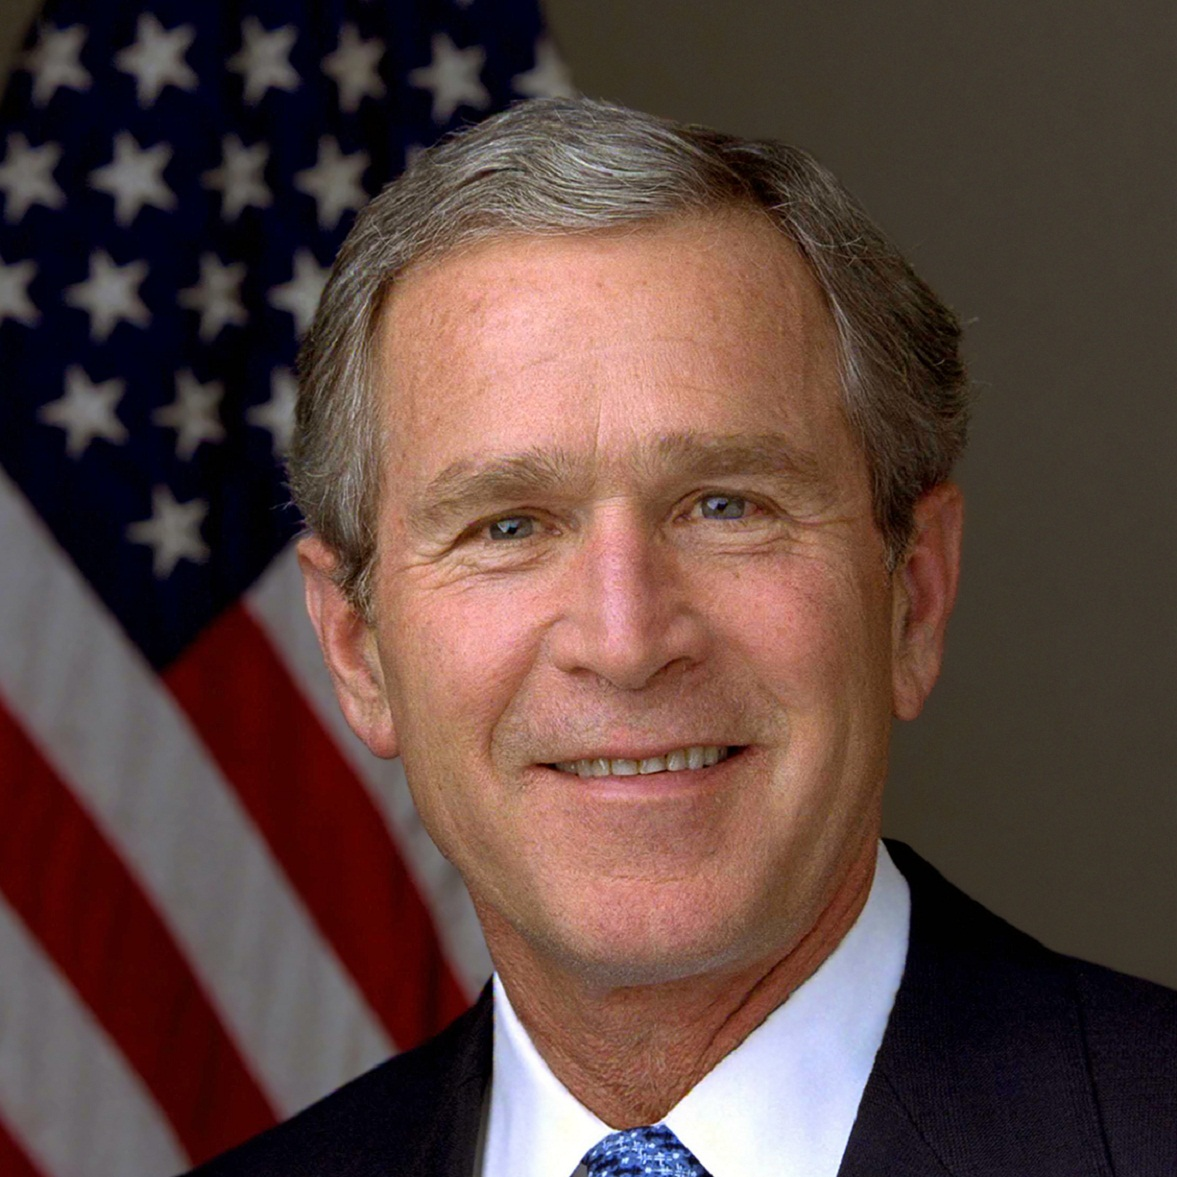 George W Bush Net Worth